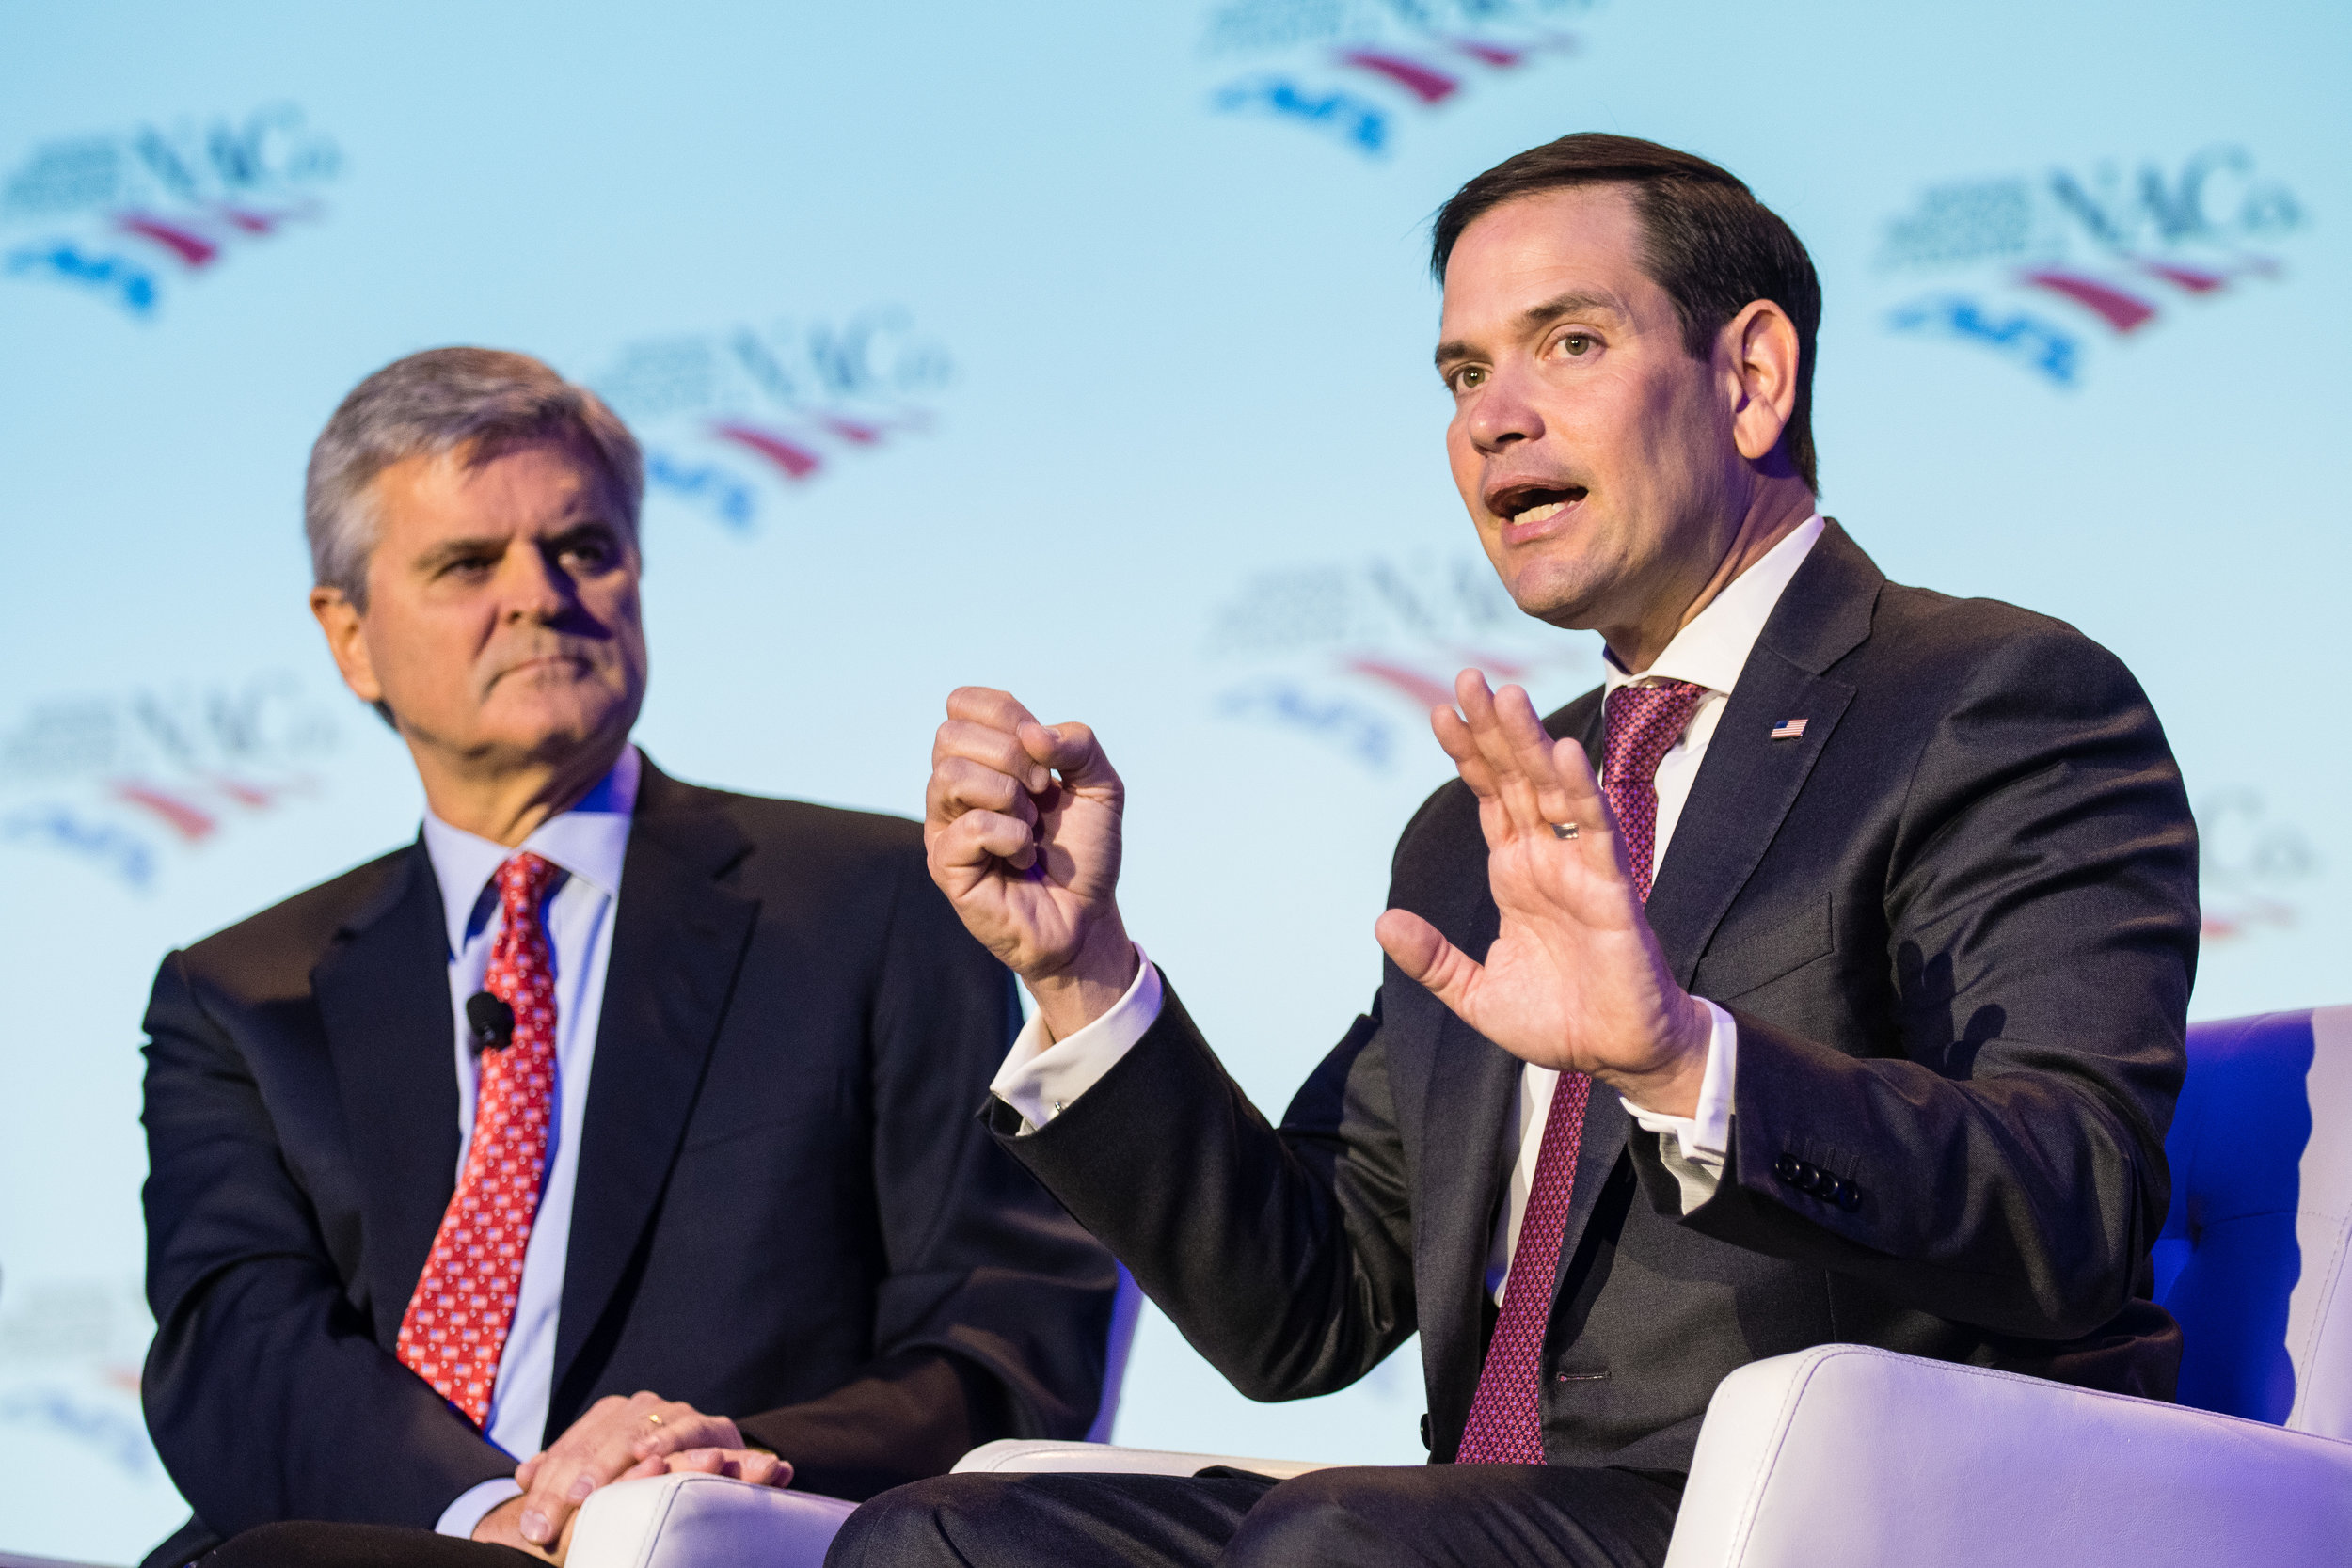 Steve Case, Chairman and CEO of Revolution and Co-Founder of America Online, and US Senator Marco Rubio during the general session of the NACo Legislative Conference in Washington, DC on Tuesday March 5th, 2019.